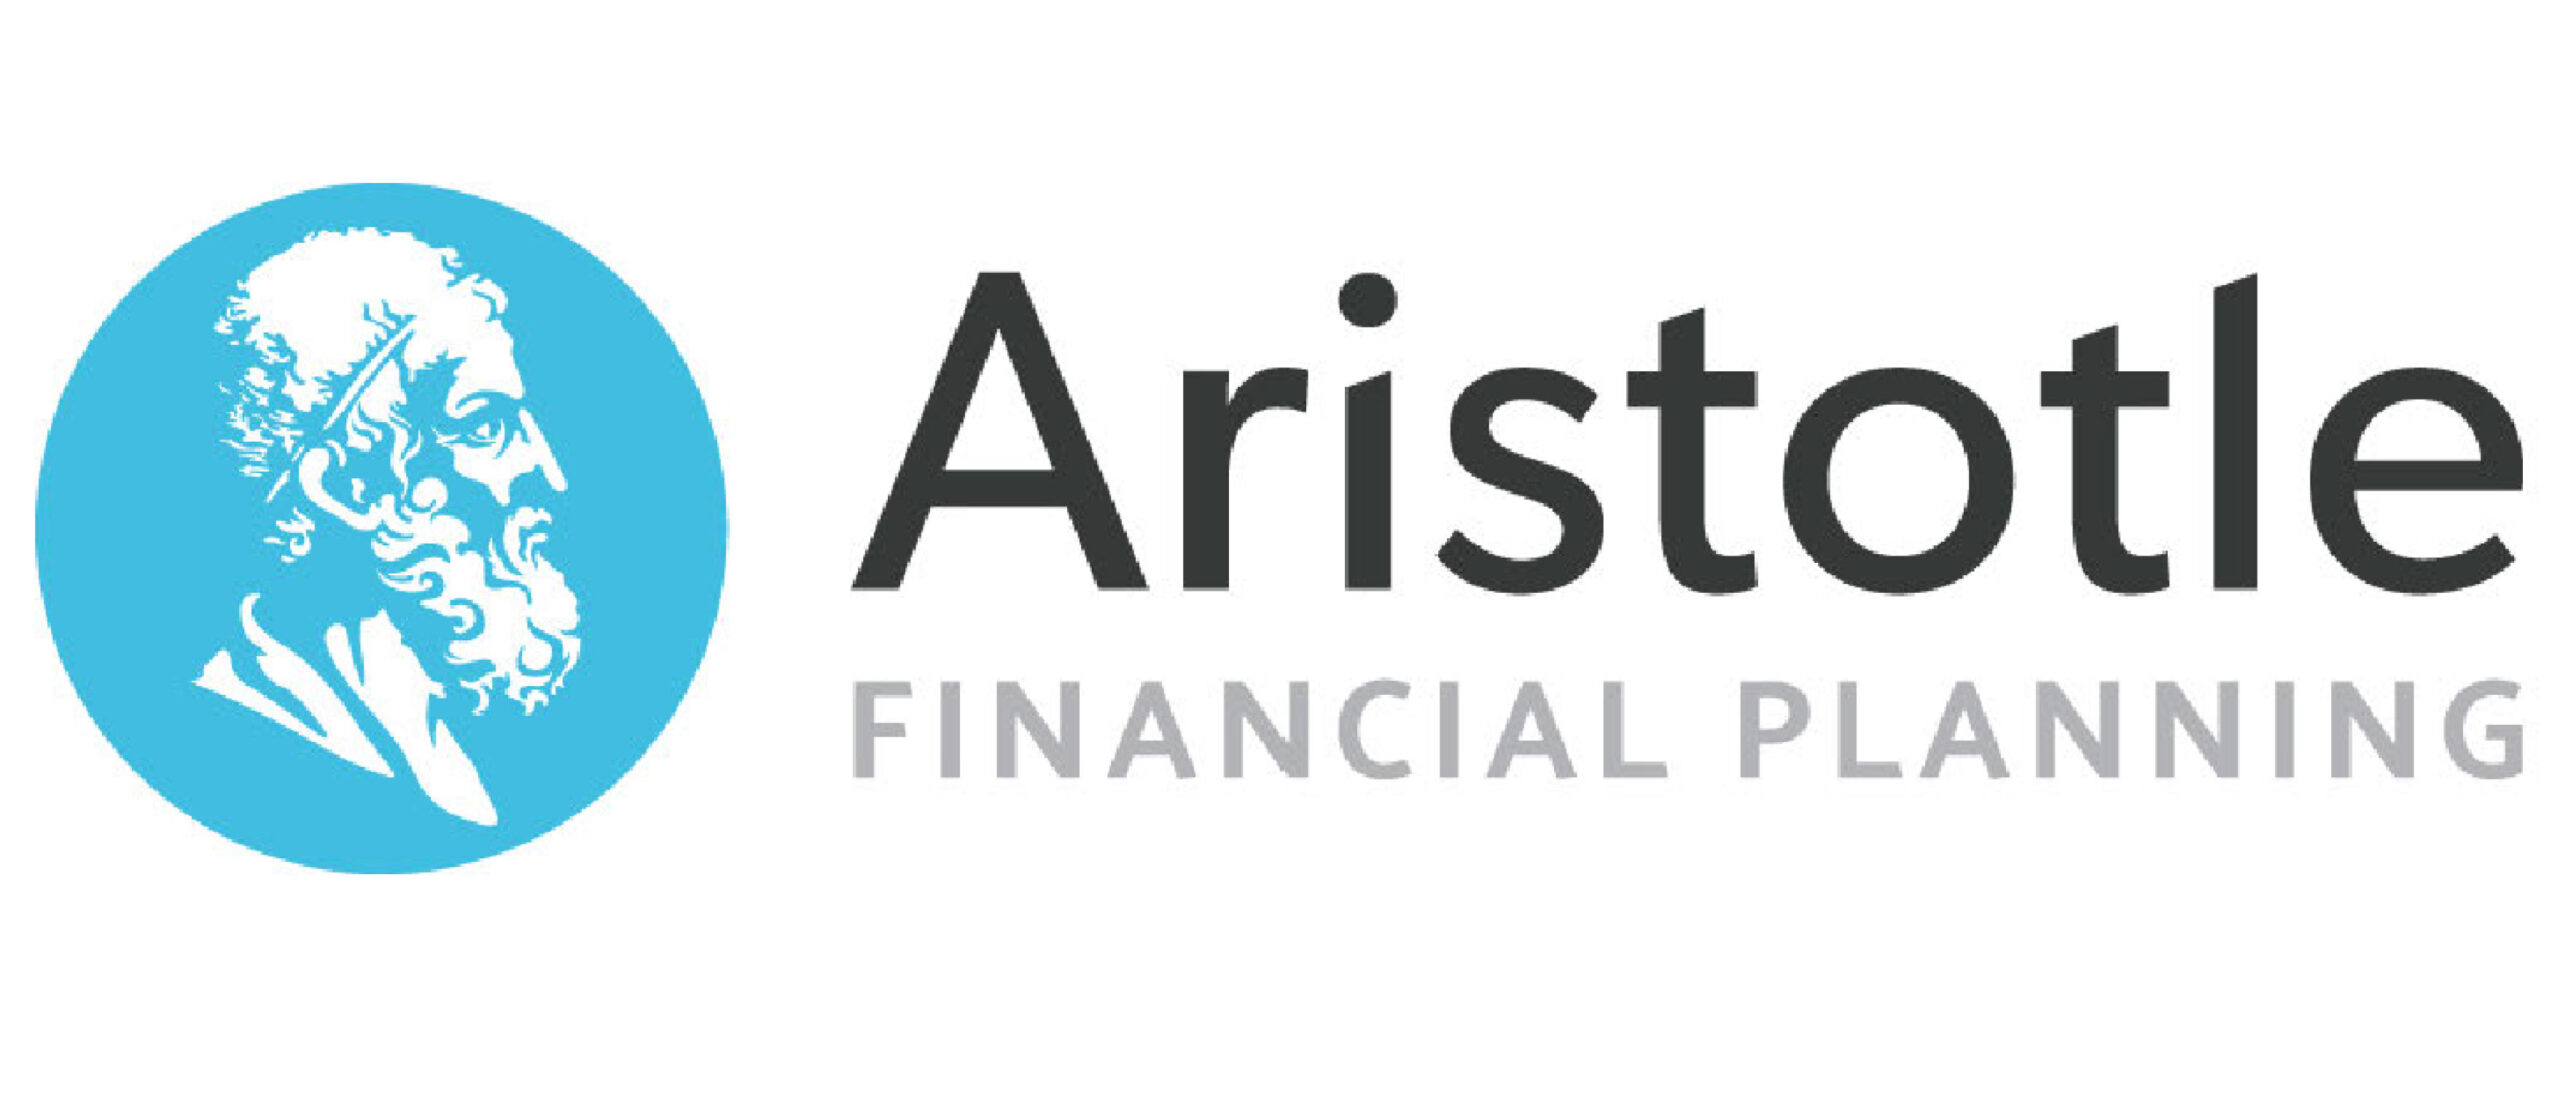 Aristotle Financial Planning